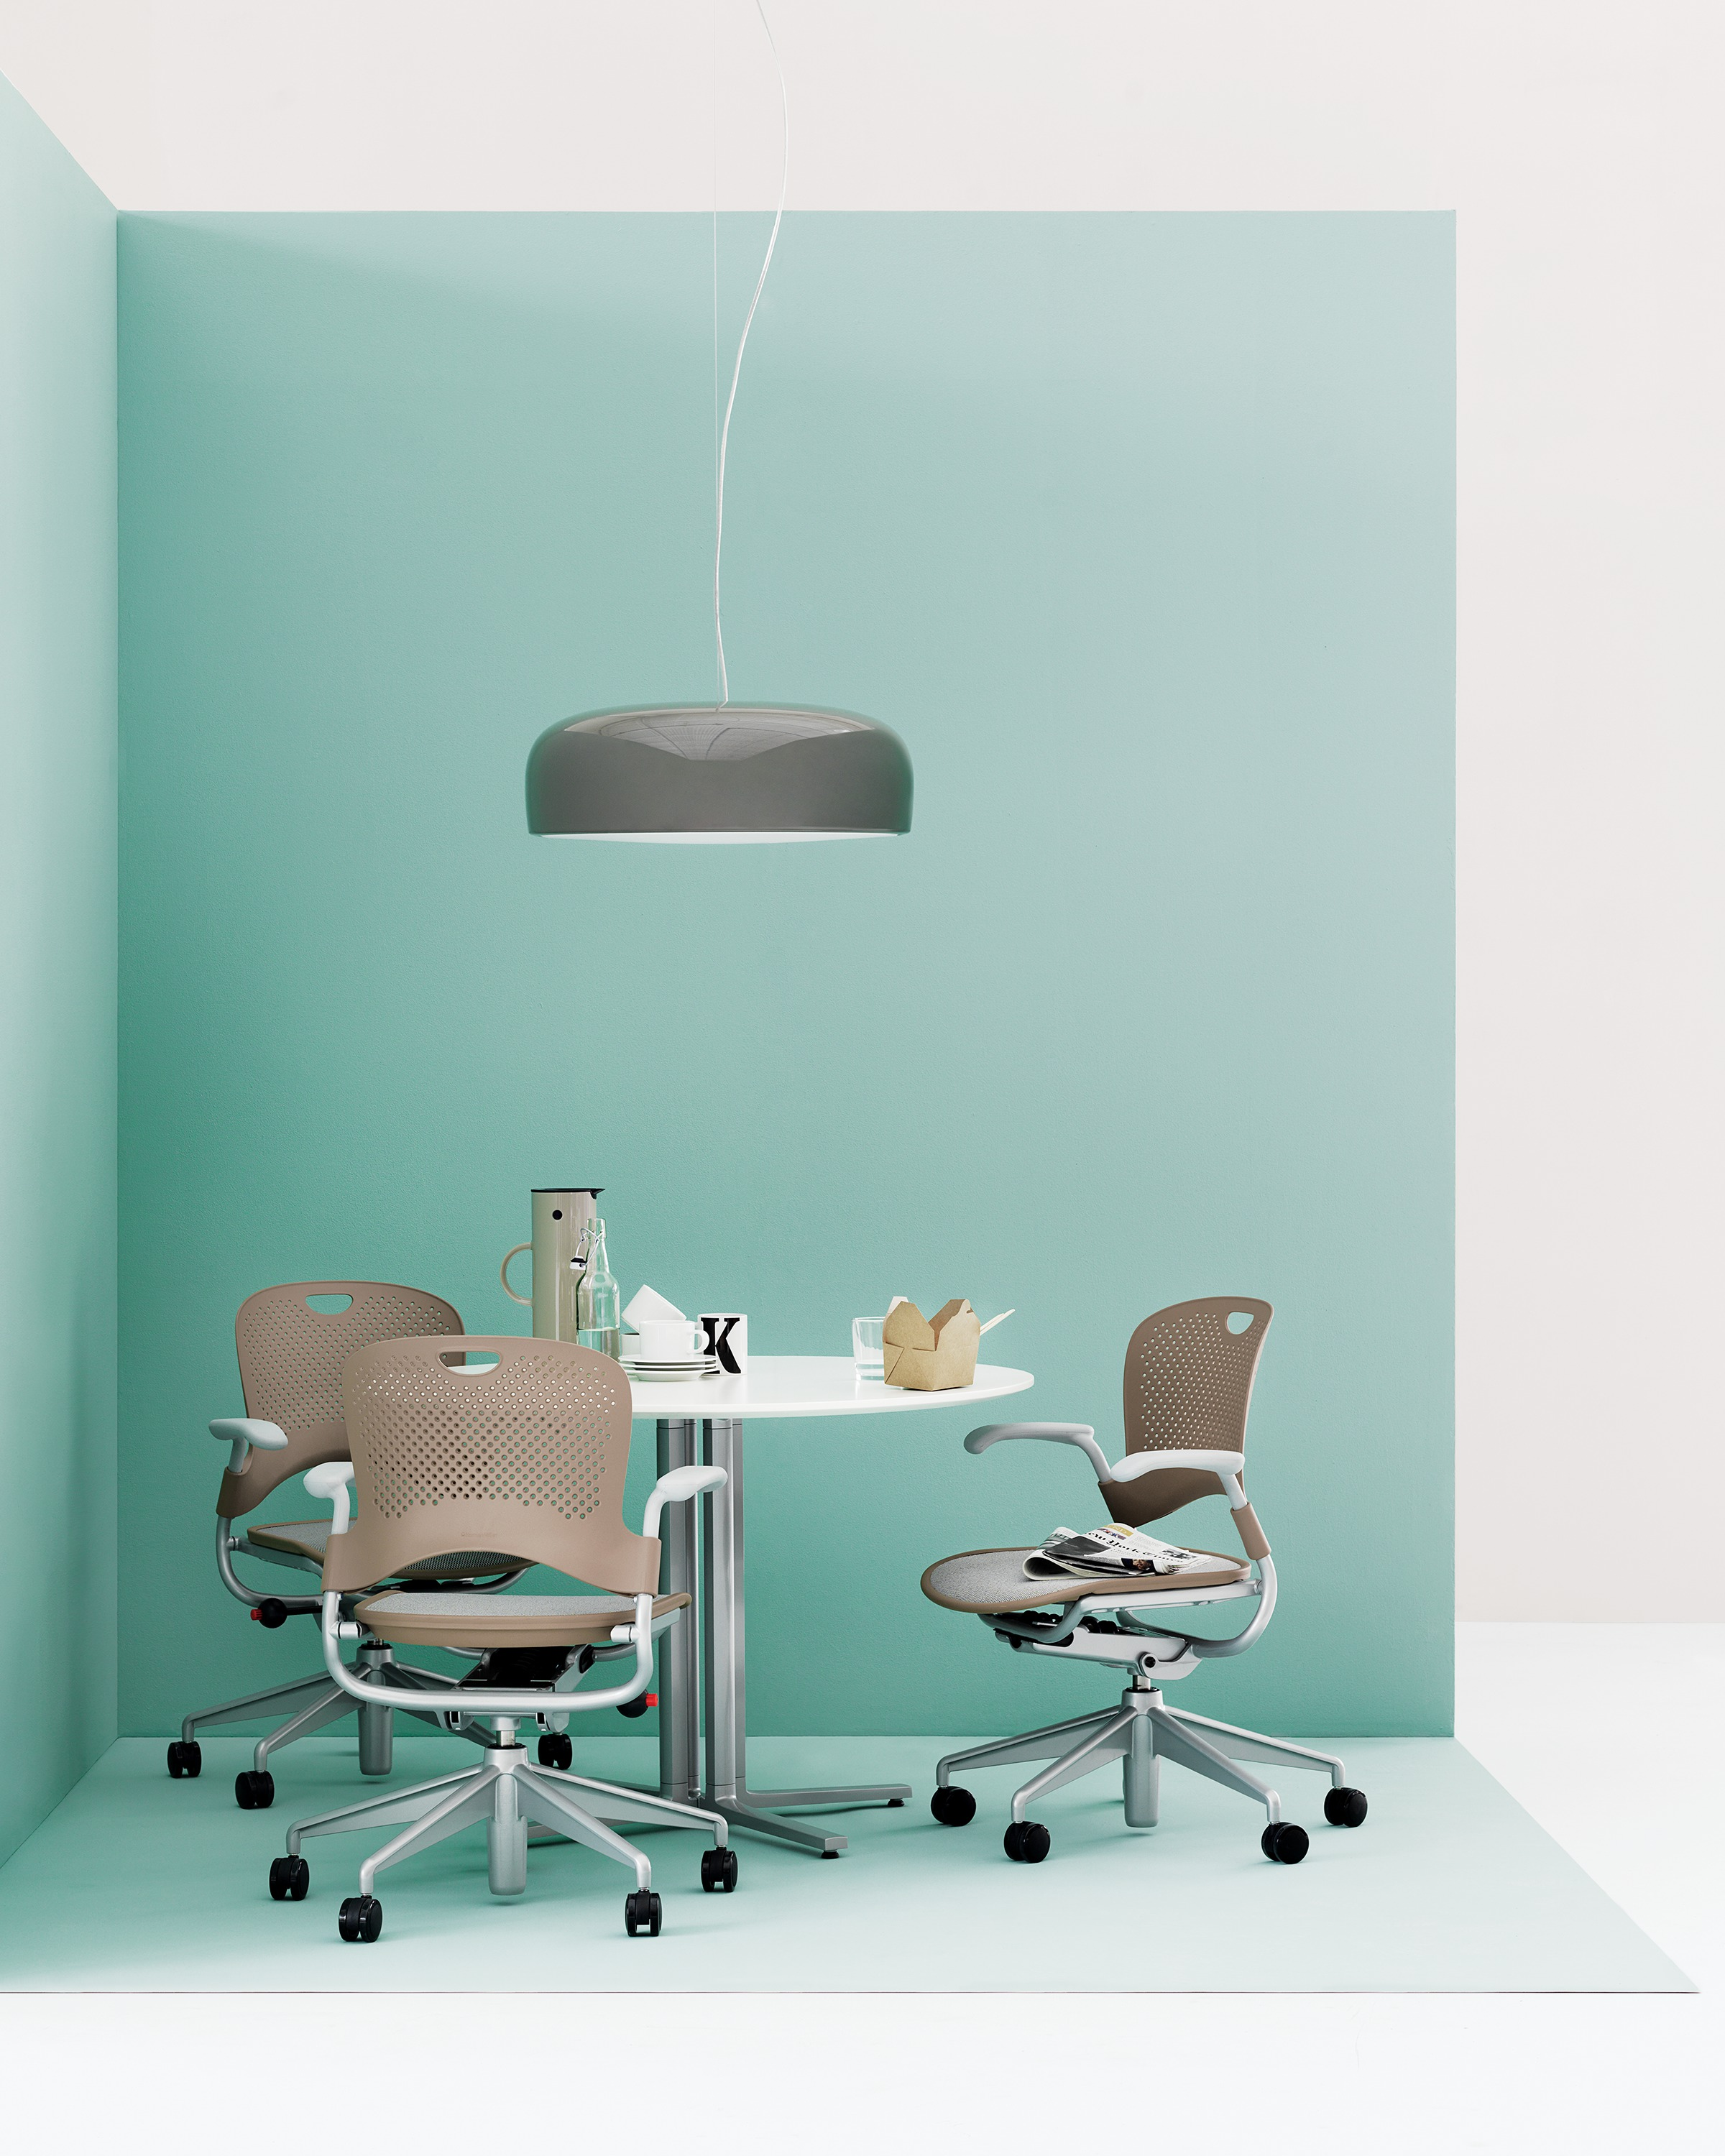 Caper Product Images - Office Chairs - Herman Miller